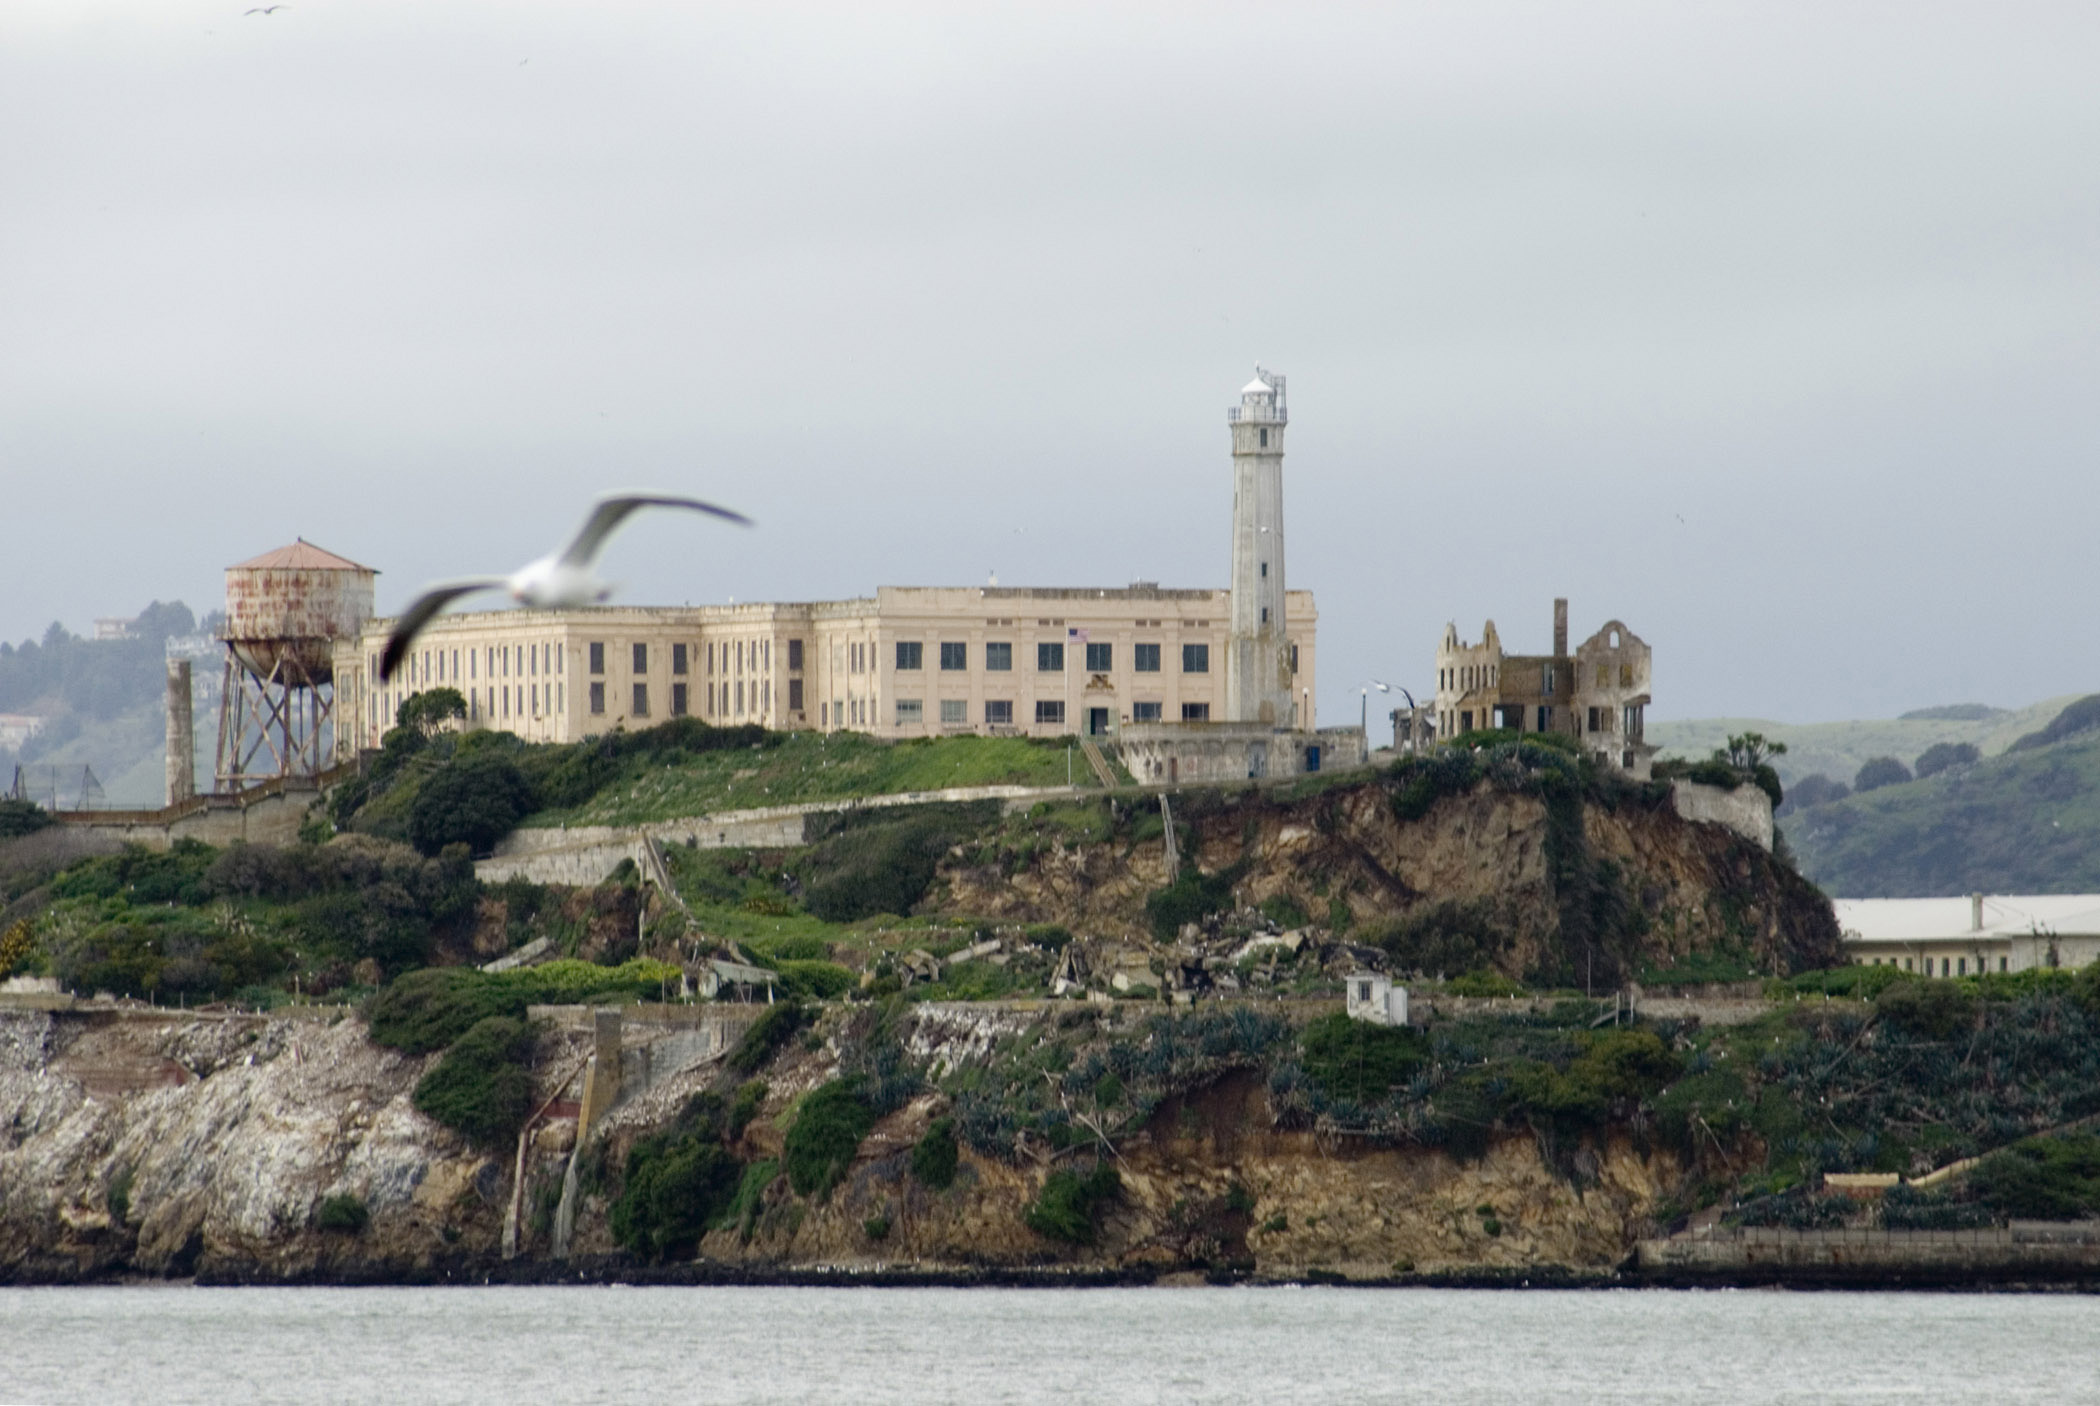 View of the island and impenetrable prison on Alcatraz Island in San Francisco bay, now a popular tourist destination